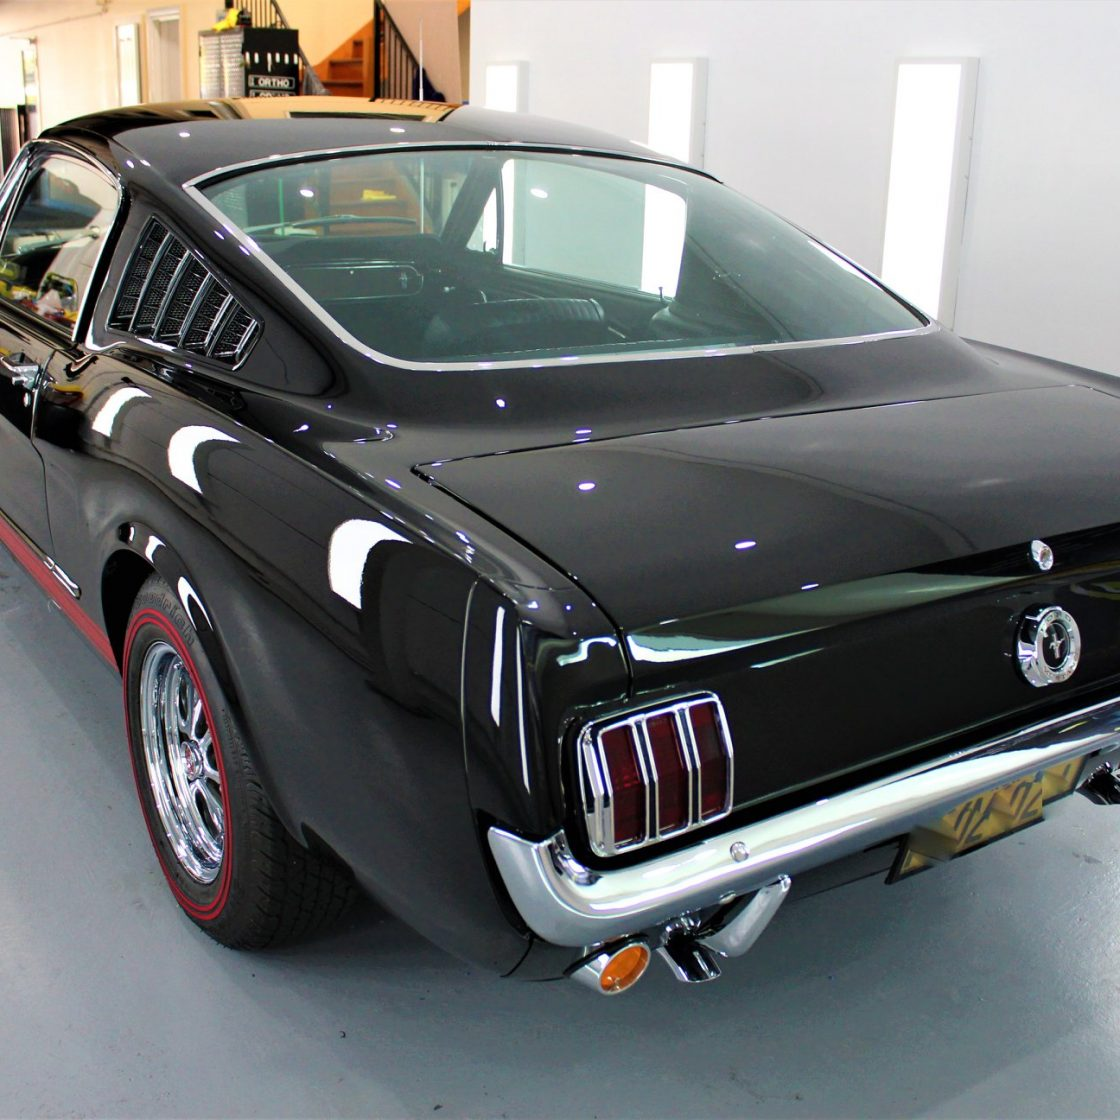 what is detailing? What is Detailing? 1965 Ford Mustang Fastback Paint Correction GYEON quartz Protection 03 1120x1120